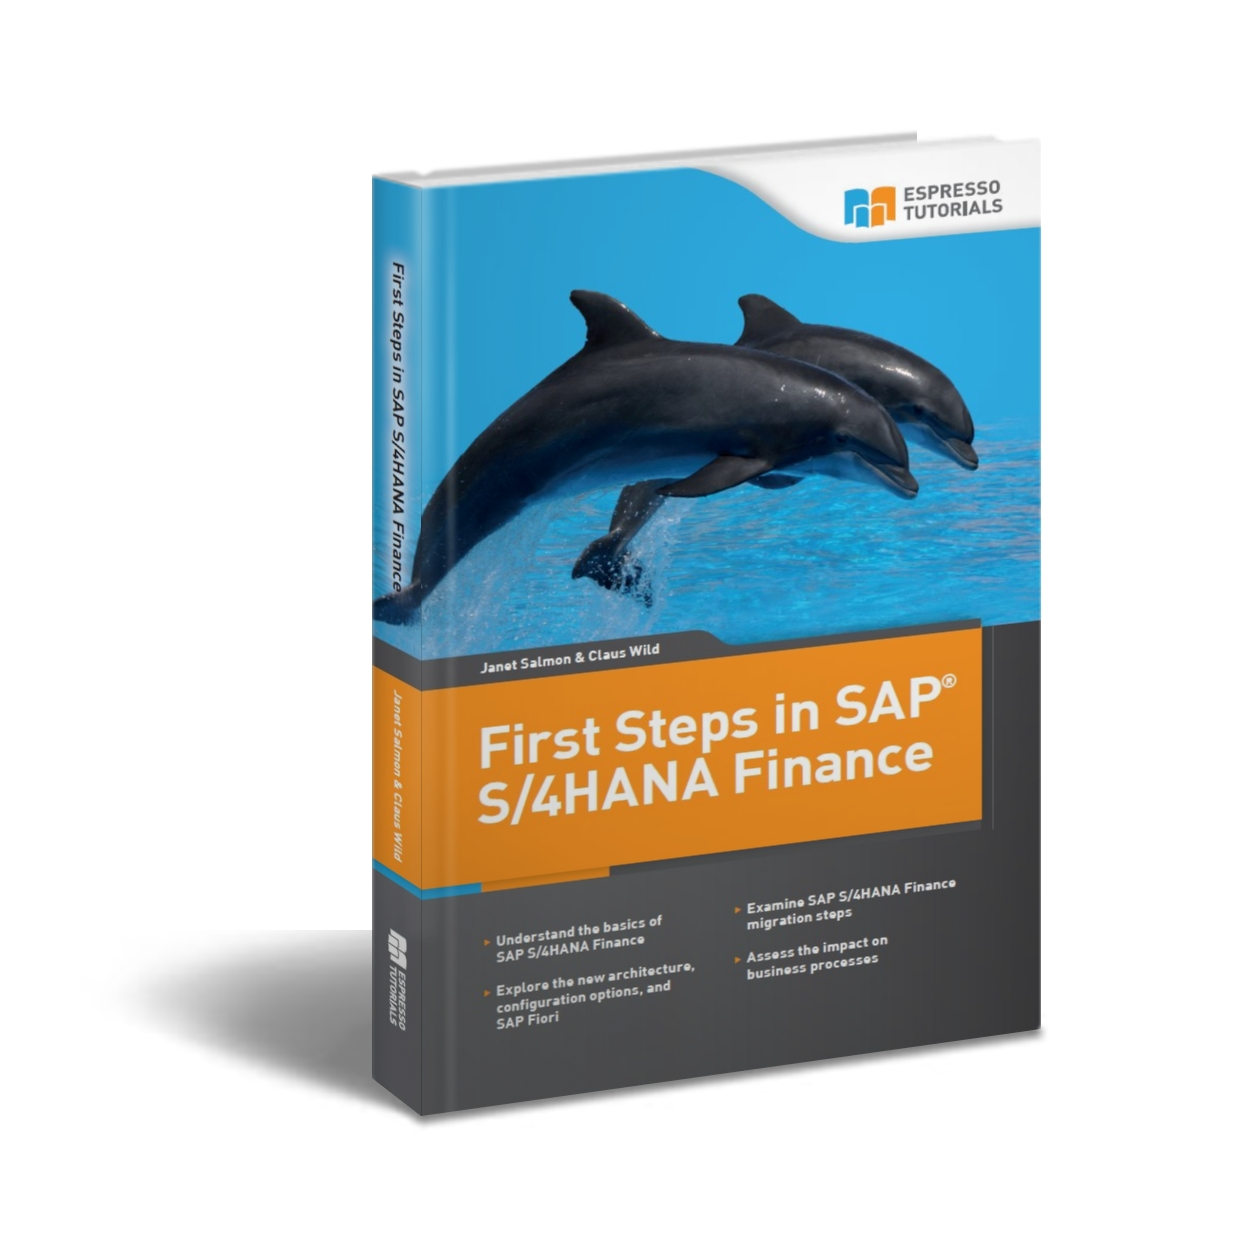 Excerpt from    First Steps in SAP® S/4HANA Finance    by: Janet Salmon and Claus Wild